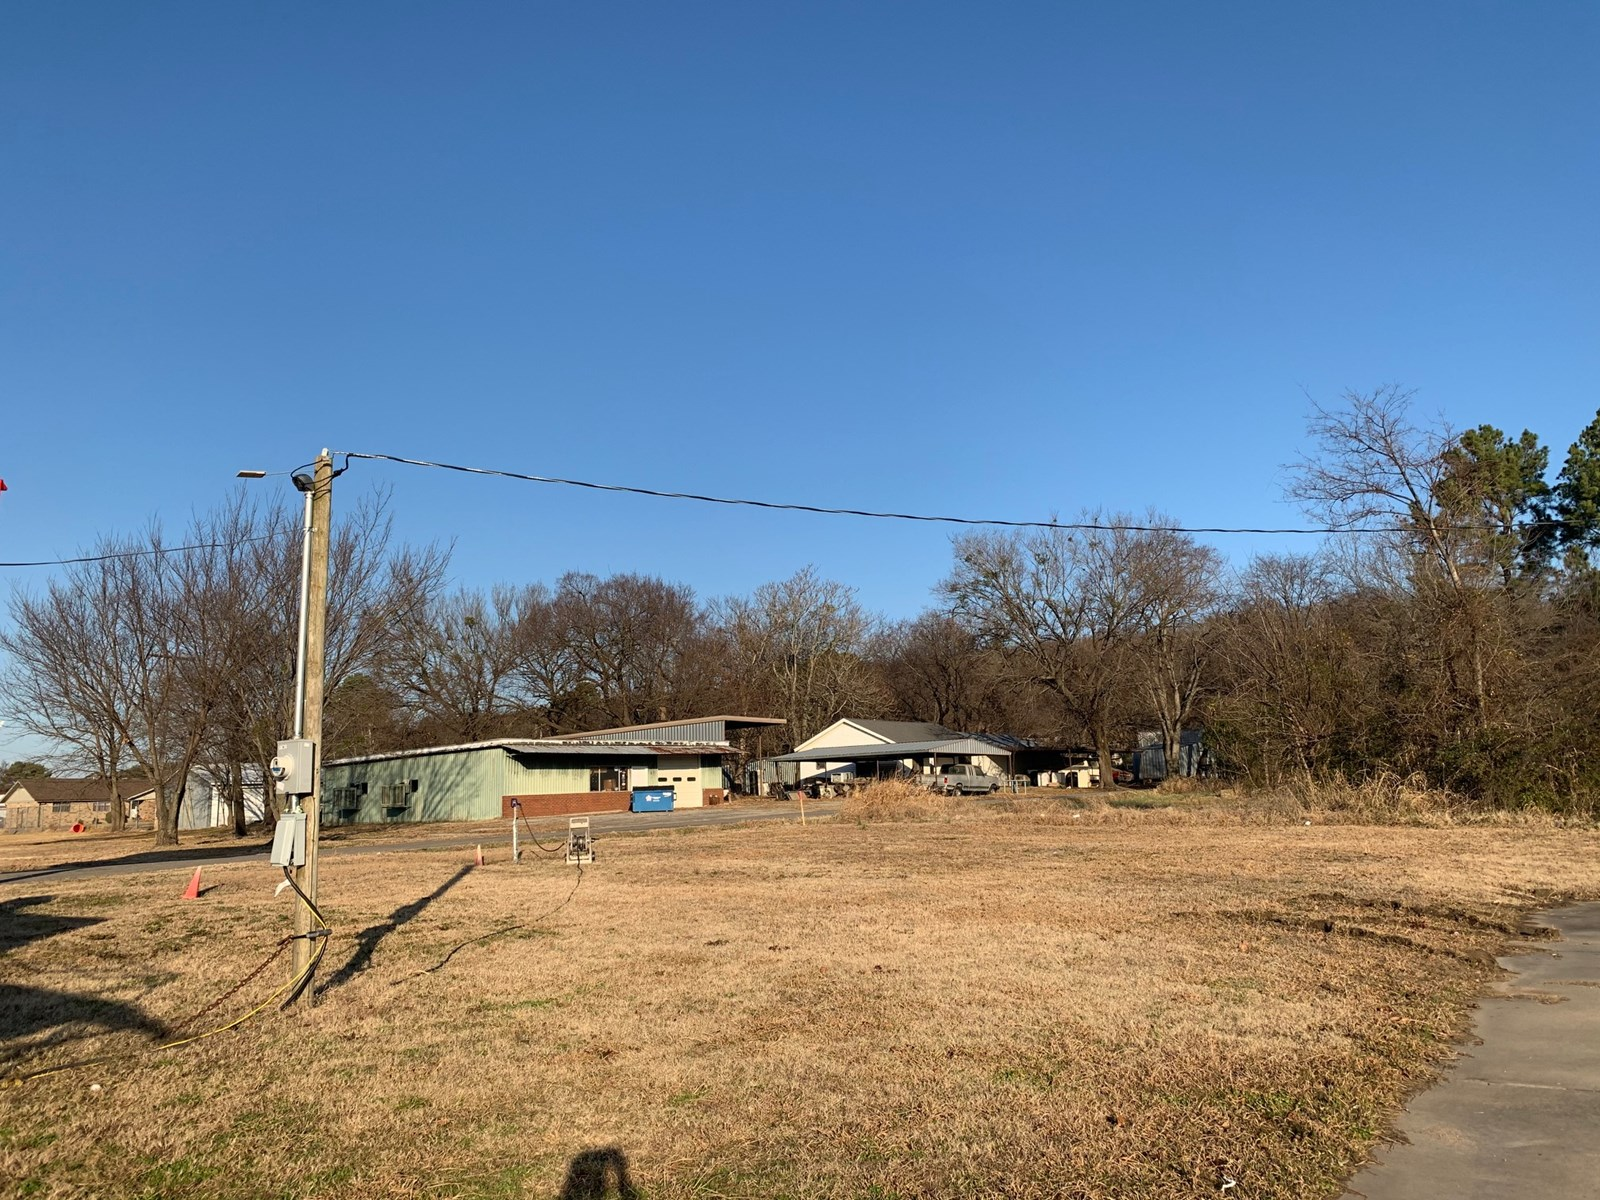 Commercial Property for Sale- Wilburton, Oklahoma